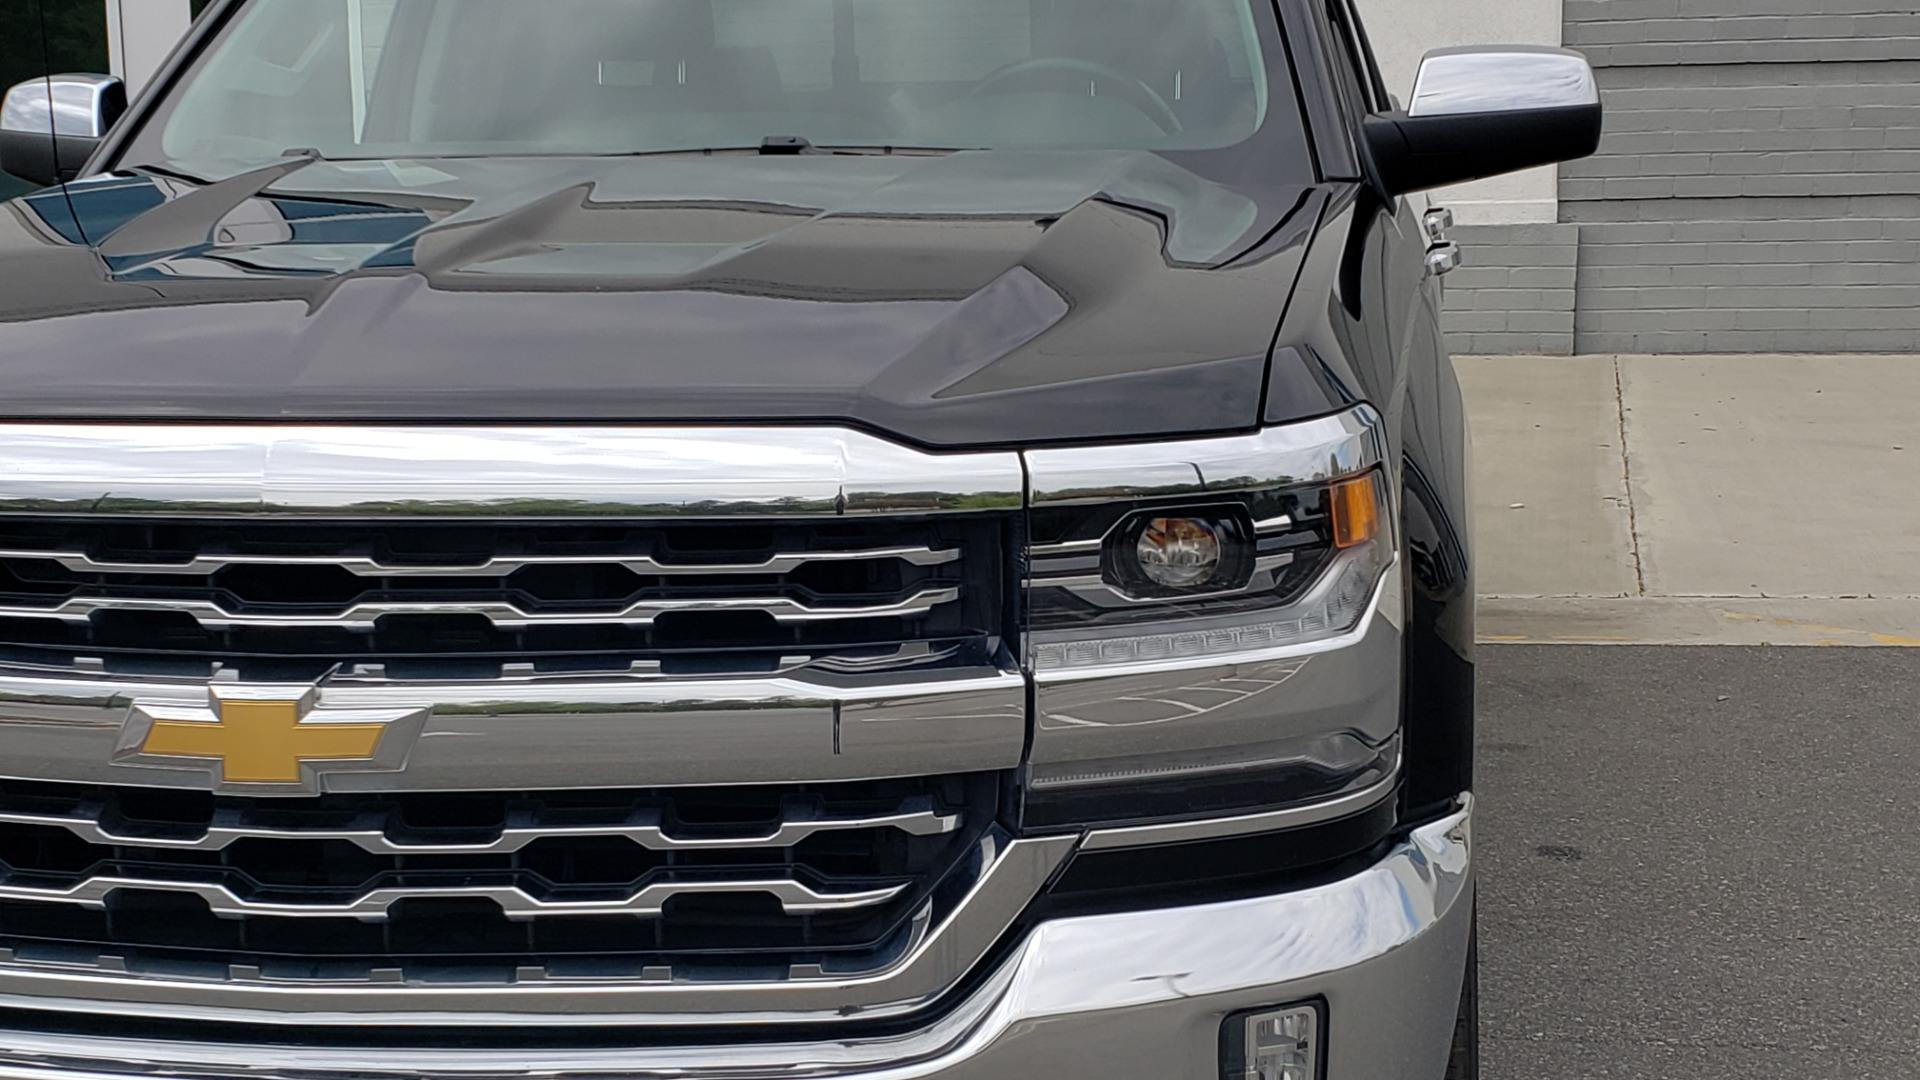 Used 2018 Chevrolet SILVERADO 1500 LTZ 1LZ / 5.3L V8 / 2WD / 6-SPD AUTO / DOUBLECAB / REARVIEW for sale Sold at Formula Imports in Charlotte NC 28227 16